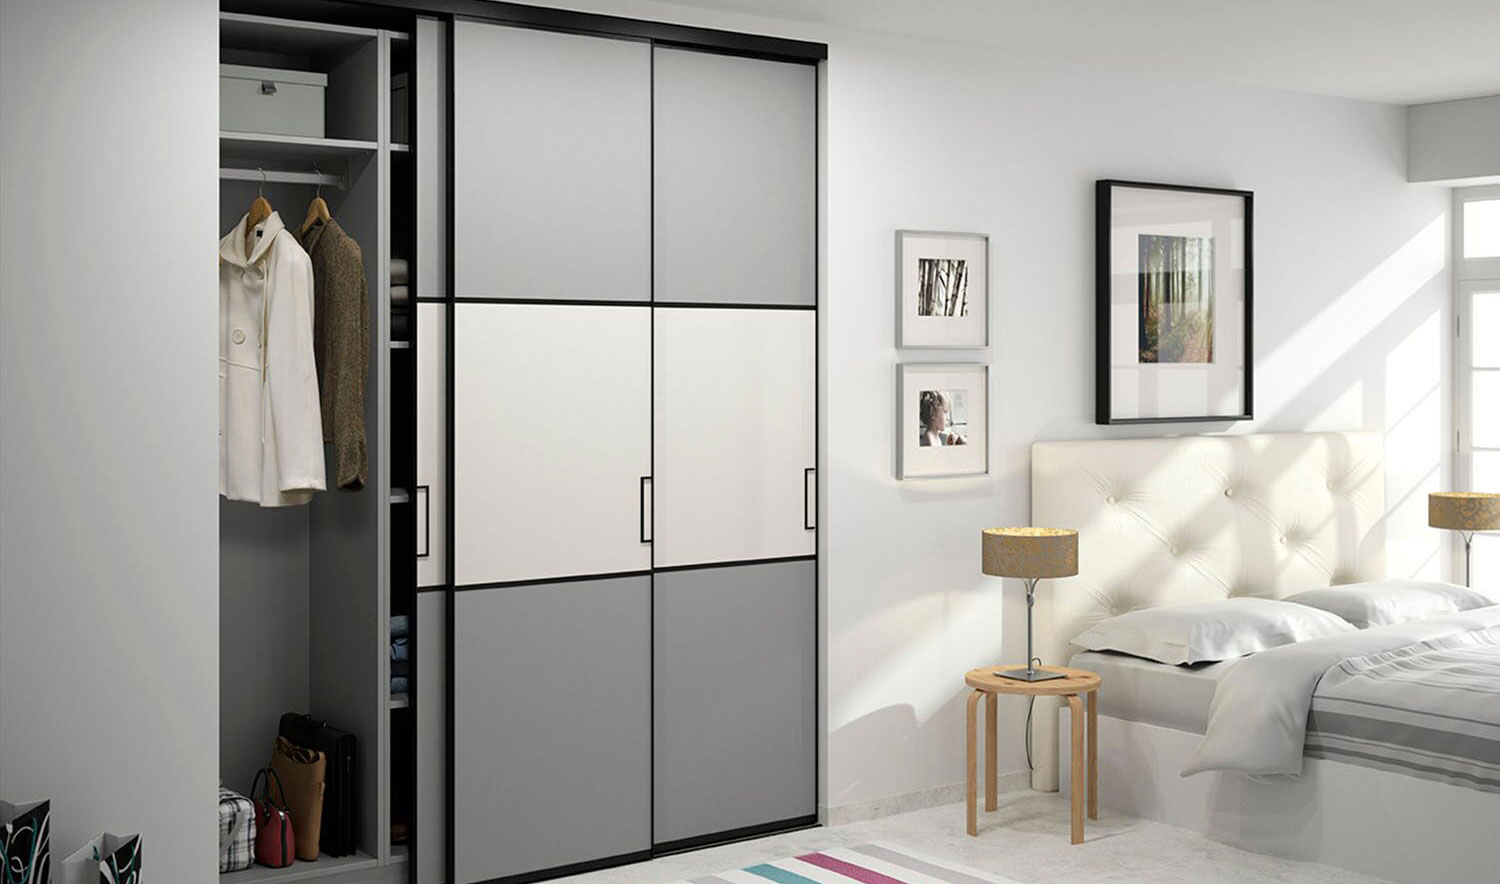 des portes coulissantes sur un dressing blog. Black Bedroom Furniture Sets. Home Design Ideas